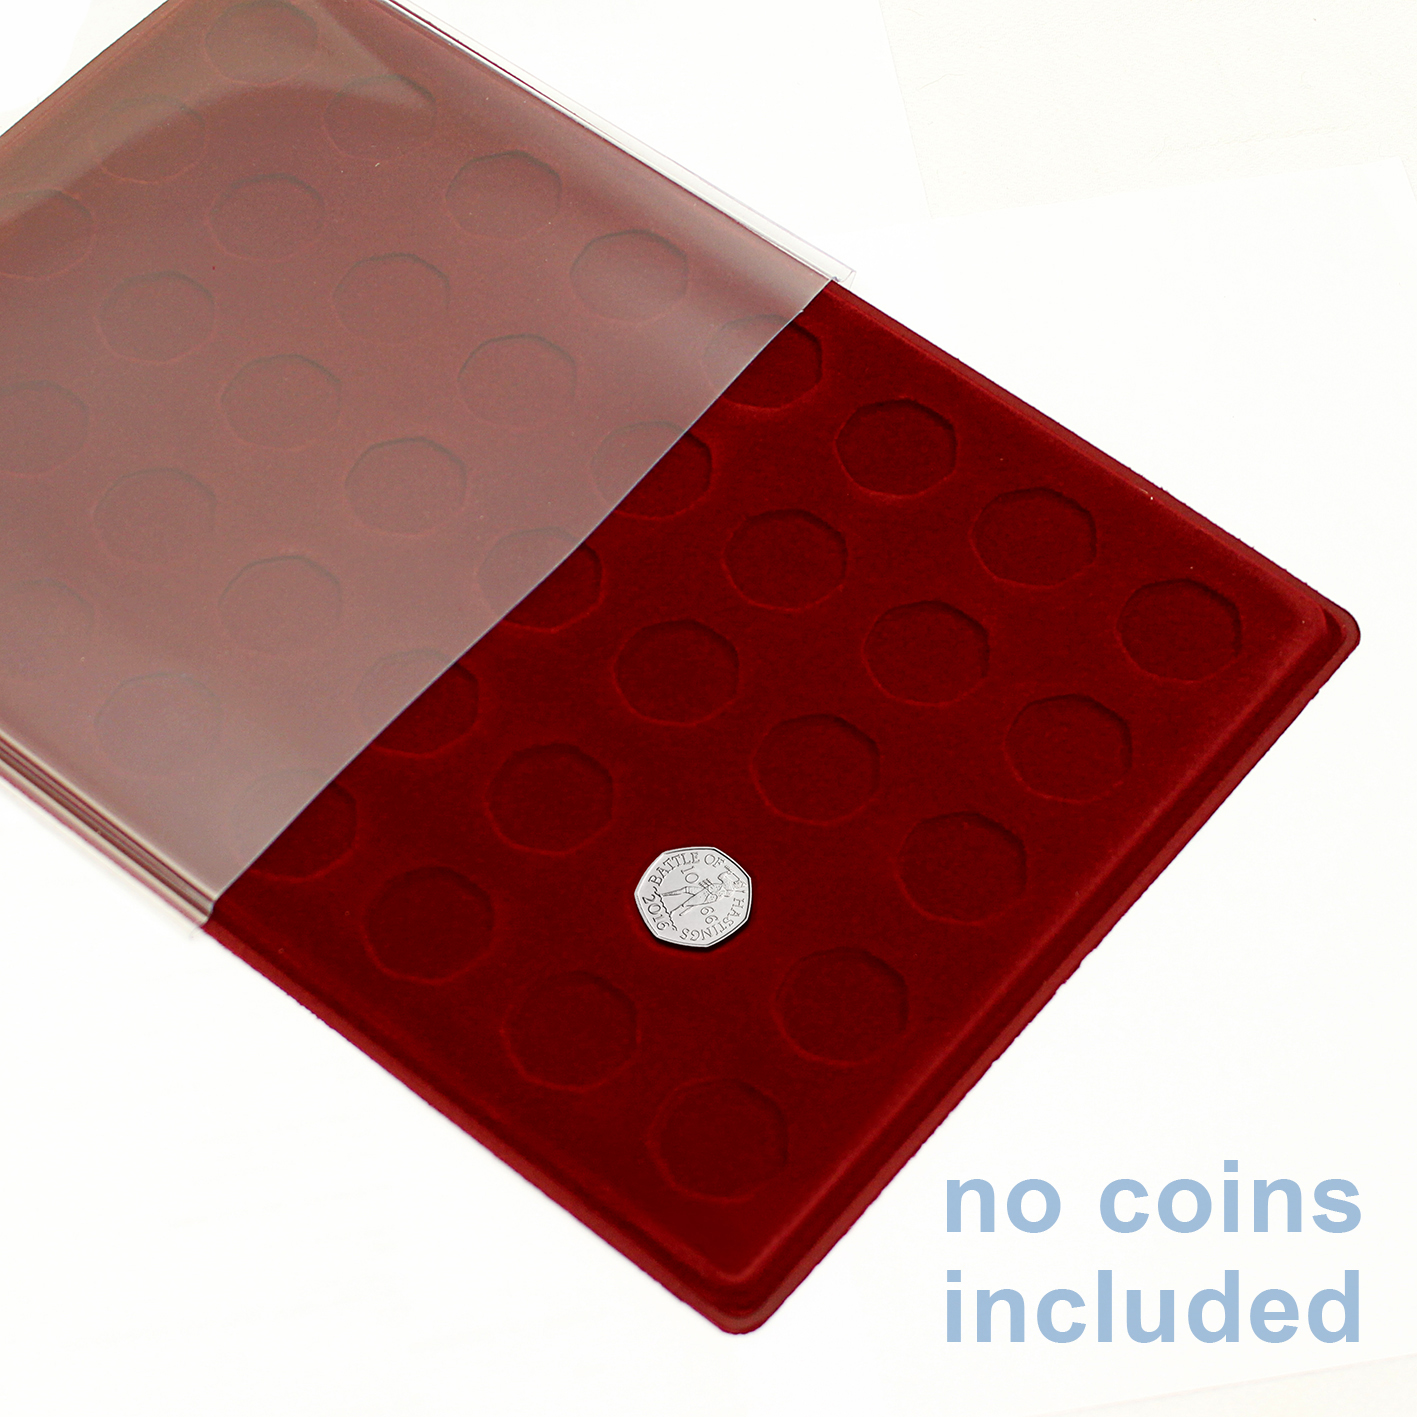 Schulz Red Coin Tray P50p For 50 Pence Coin 40